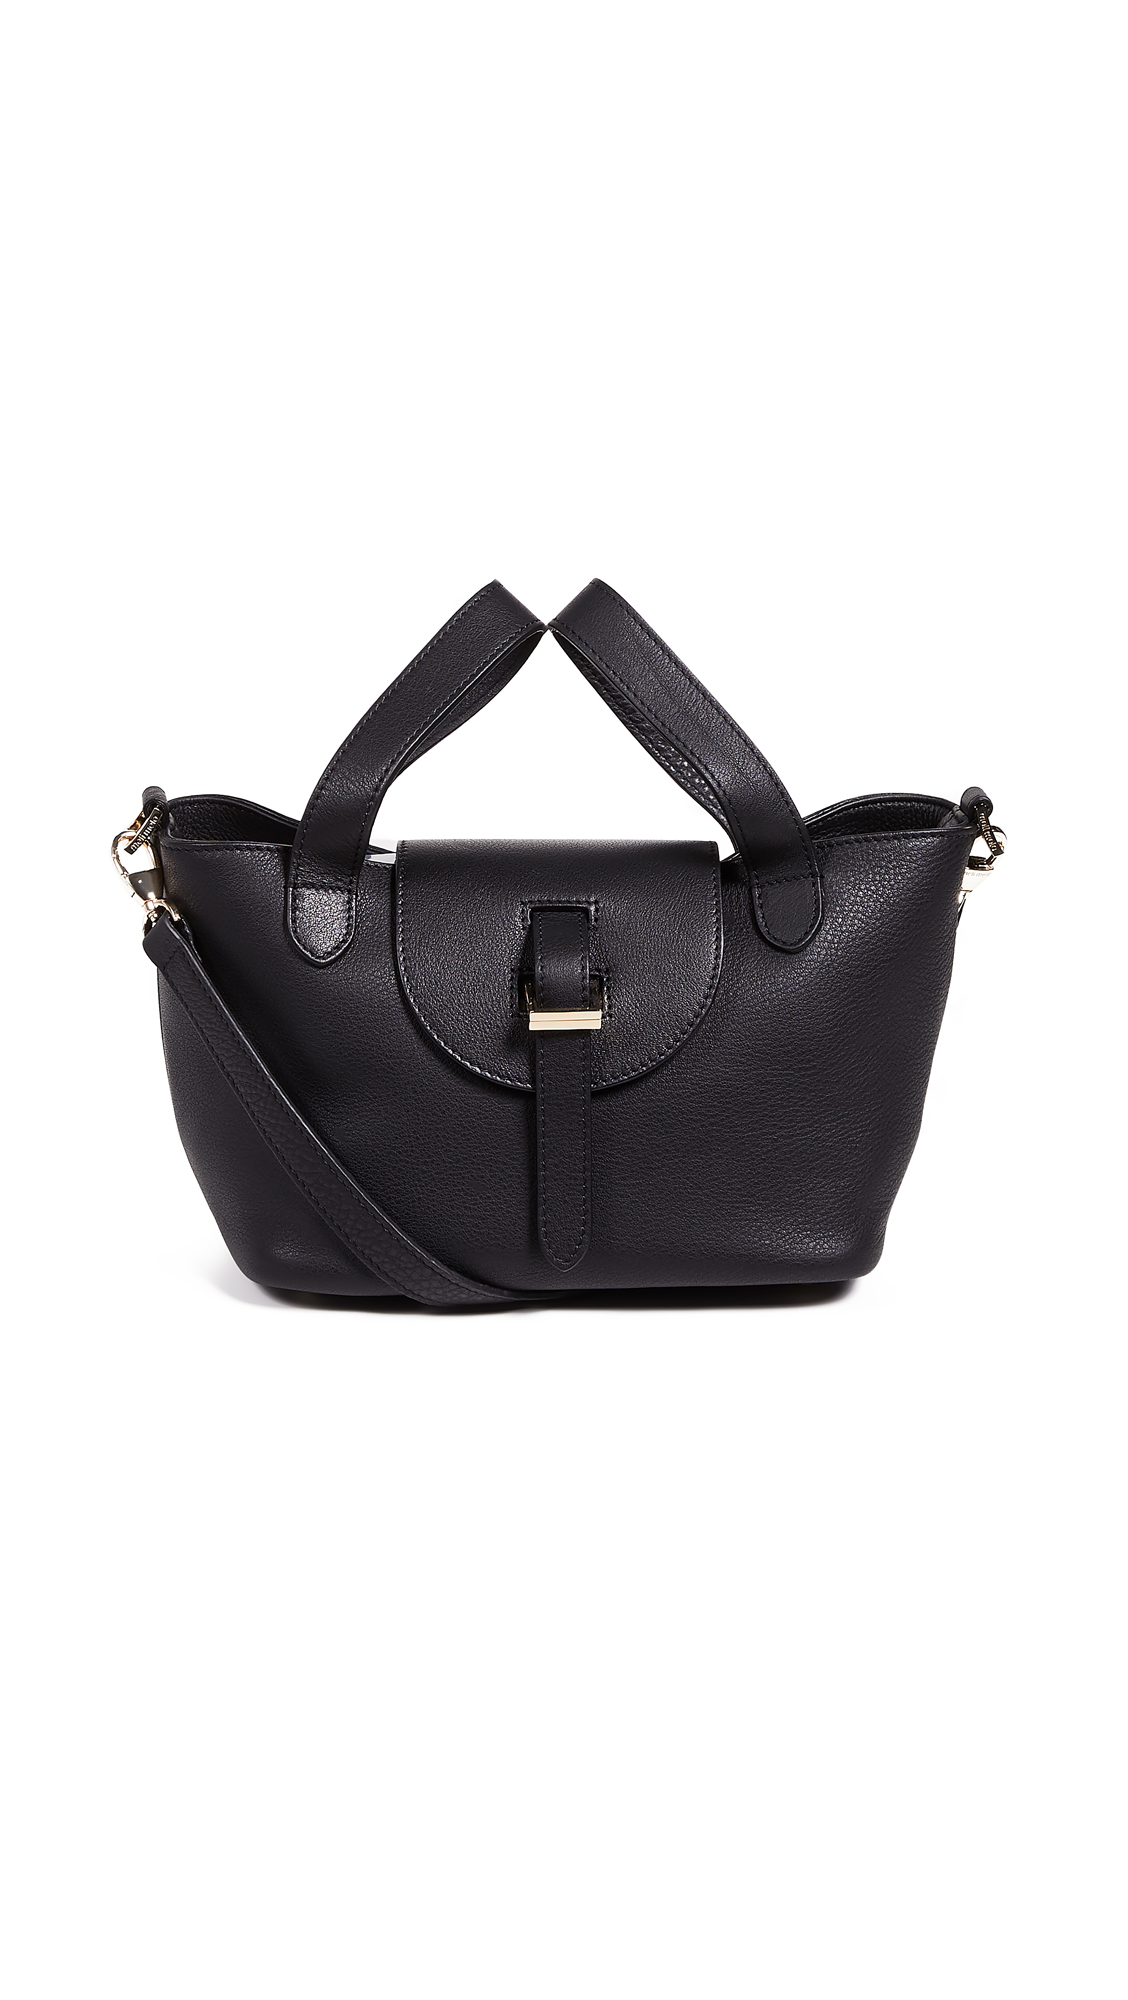 Thela Mini Satchel, Black